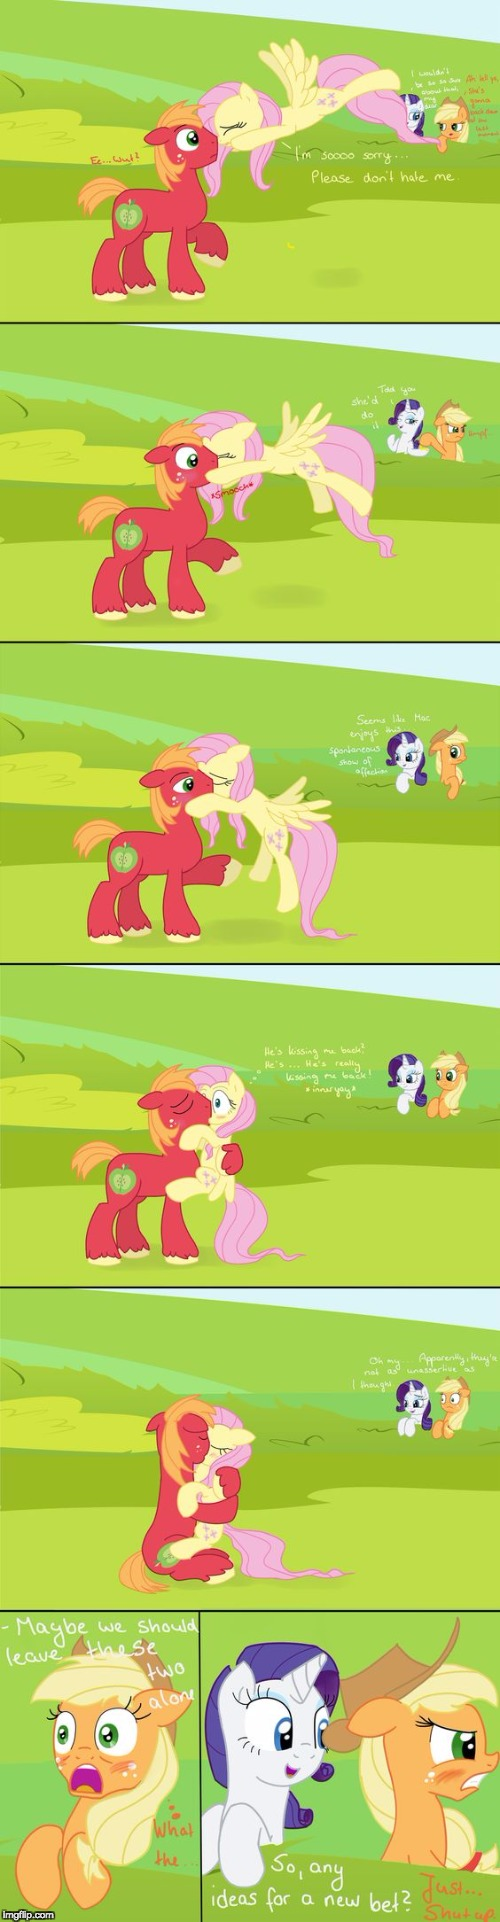 Looks like some interesting pony action! | image tagged in memes,my little pony,fluttershy,big mac,applejack,rarity | made w/ Imgflip meme maker